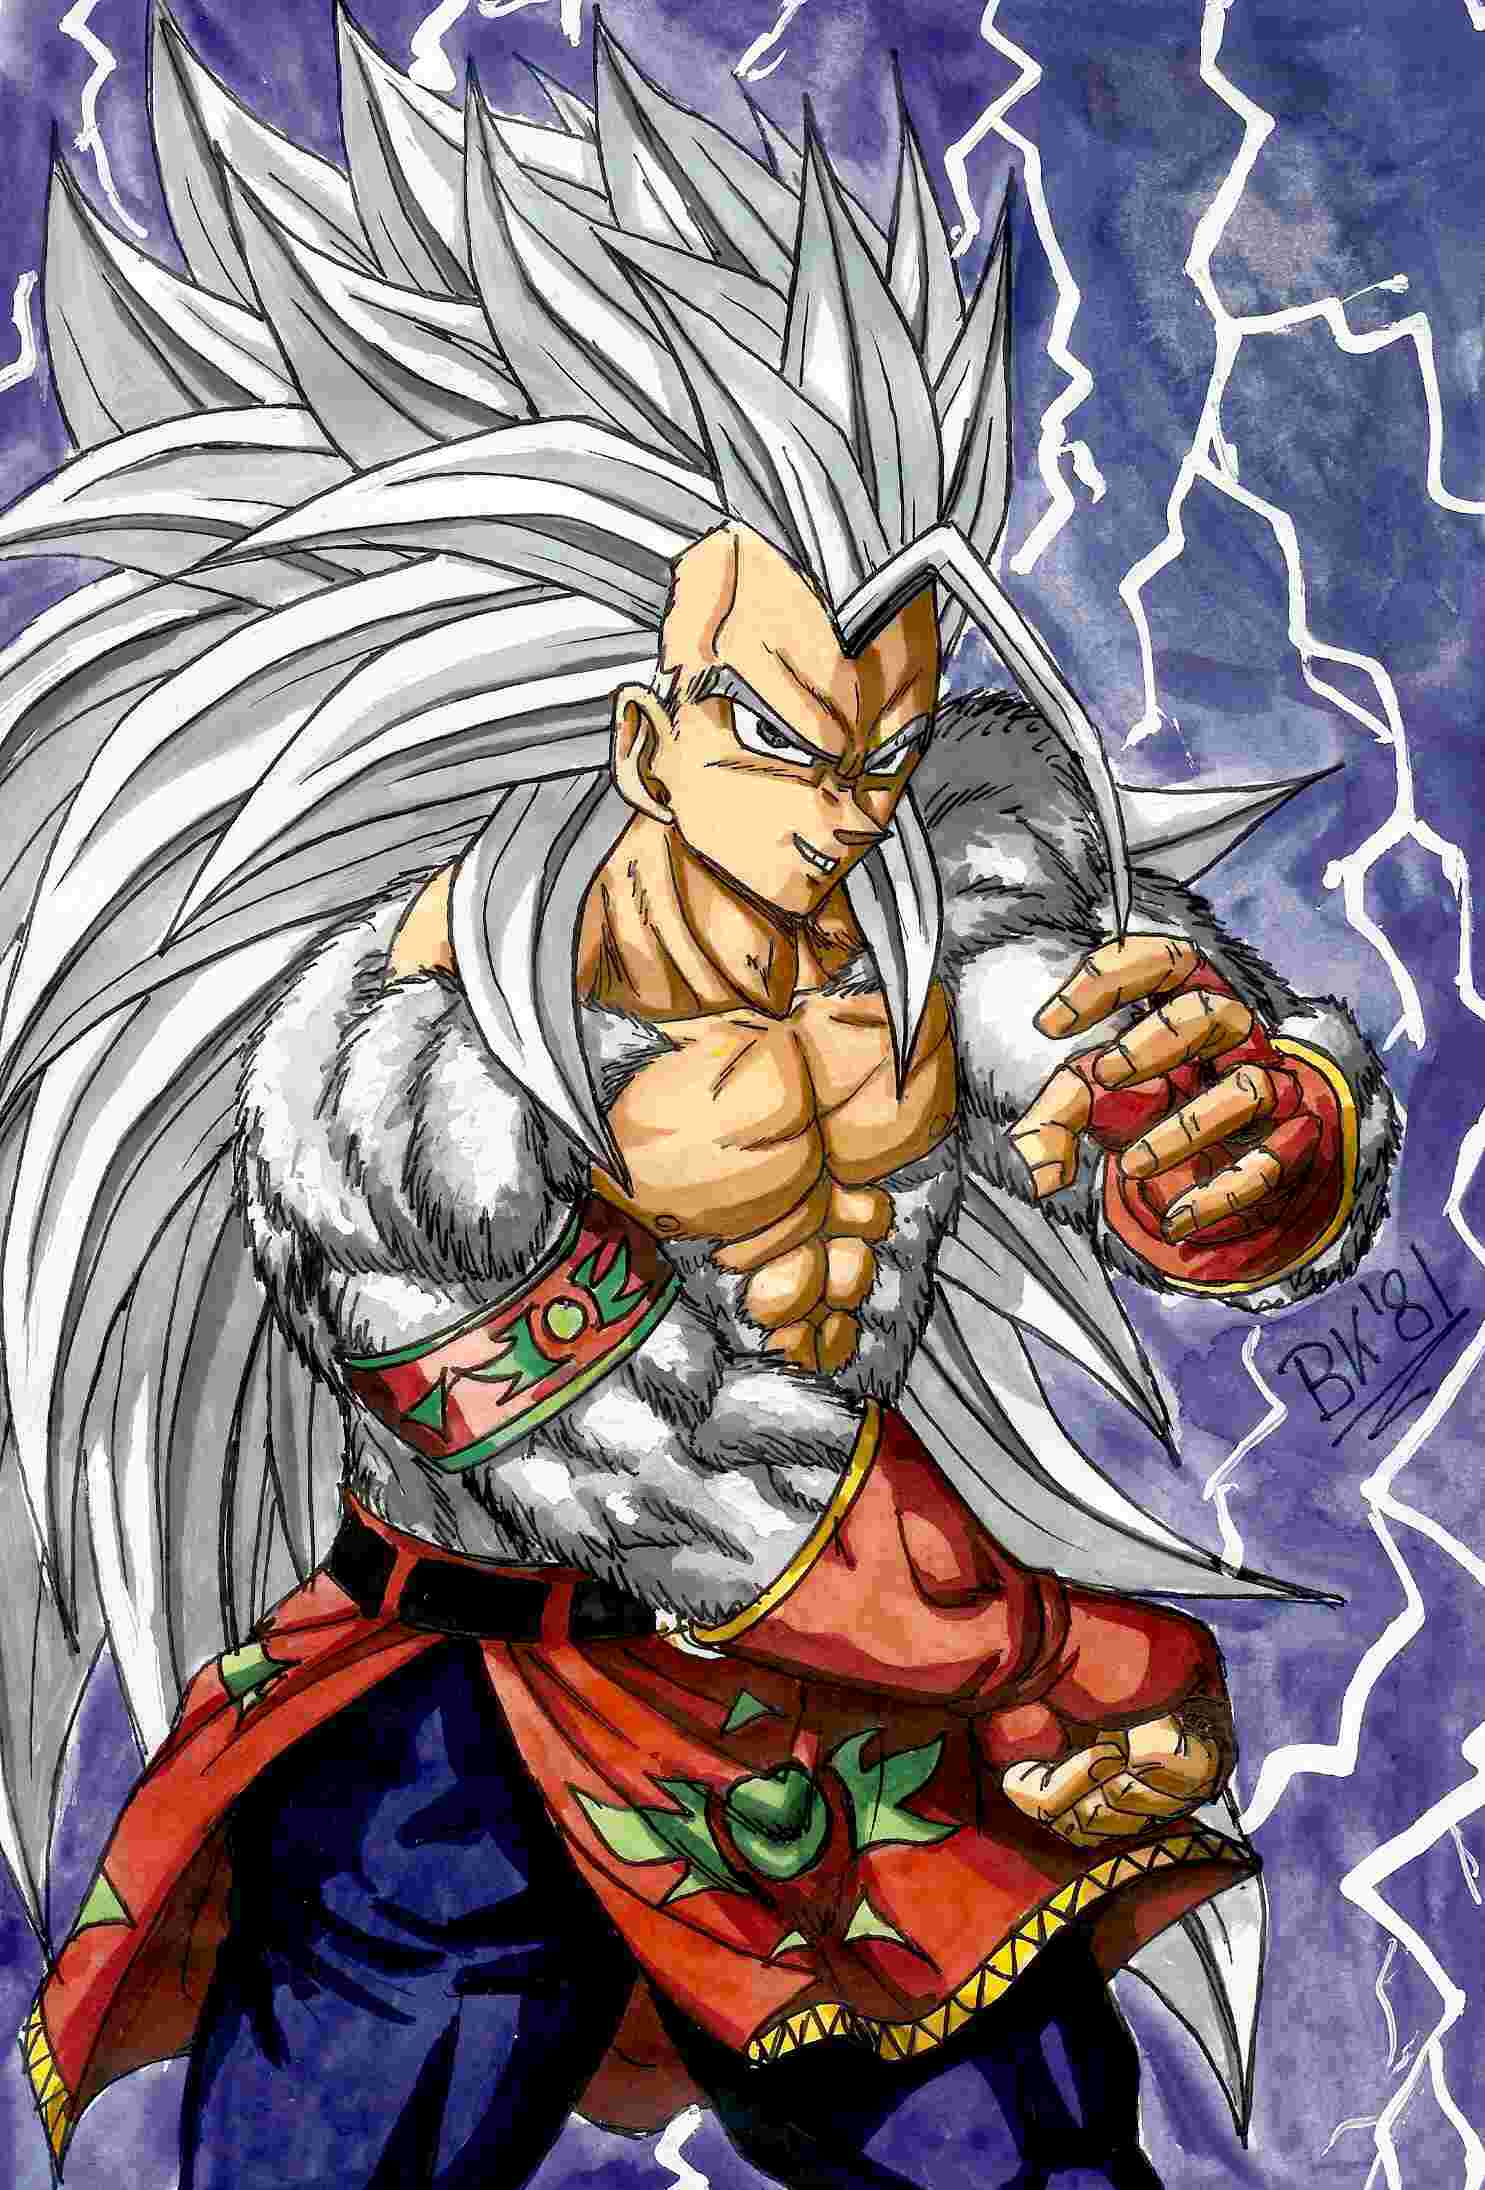 VEGETA Images Ssj5 Vegeta HD Wallpaper And Background Photos